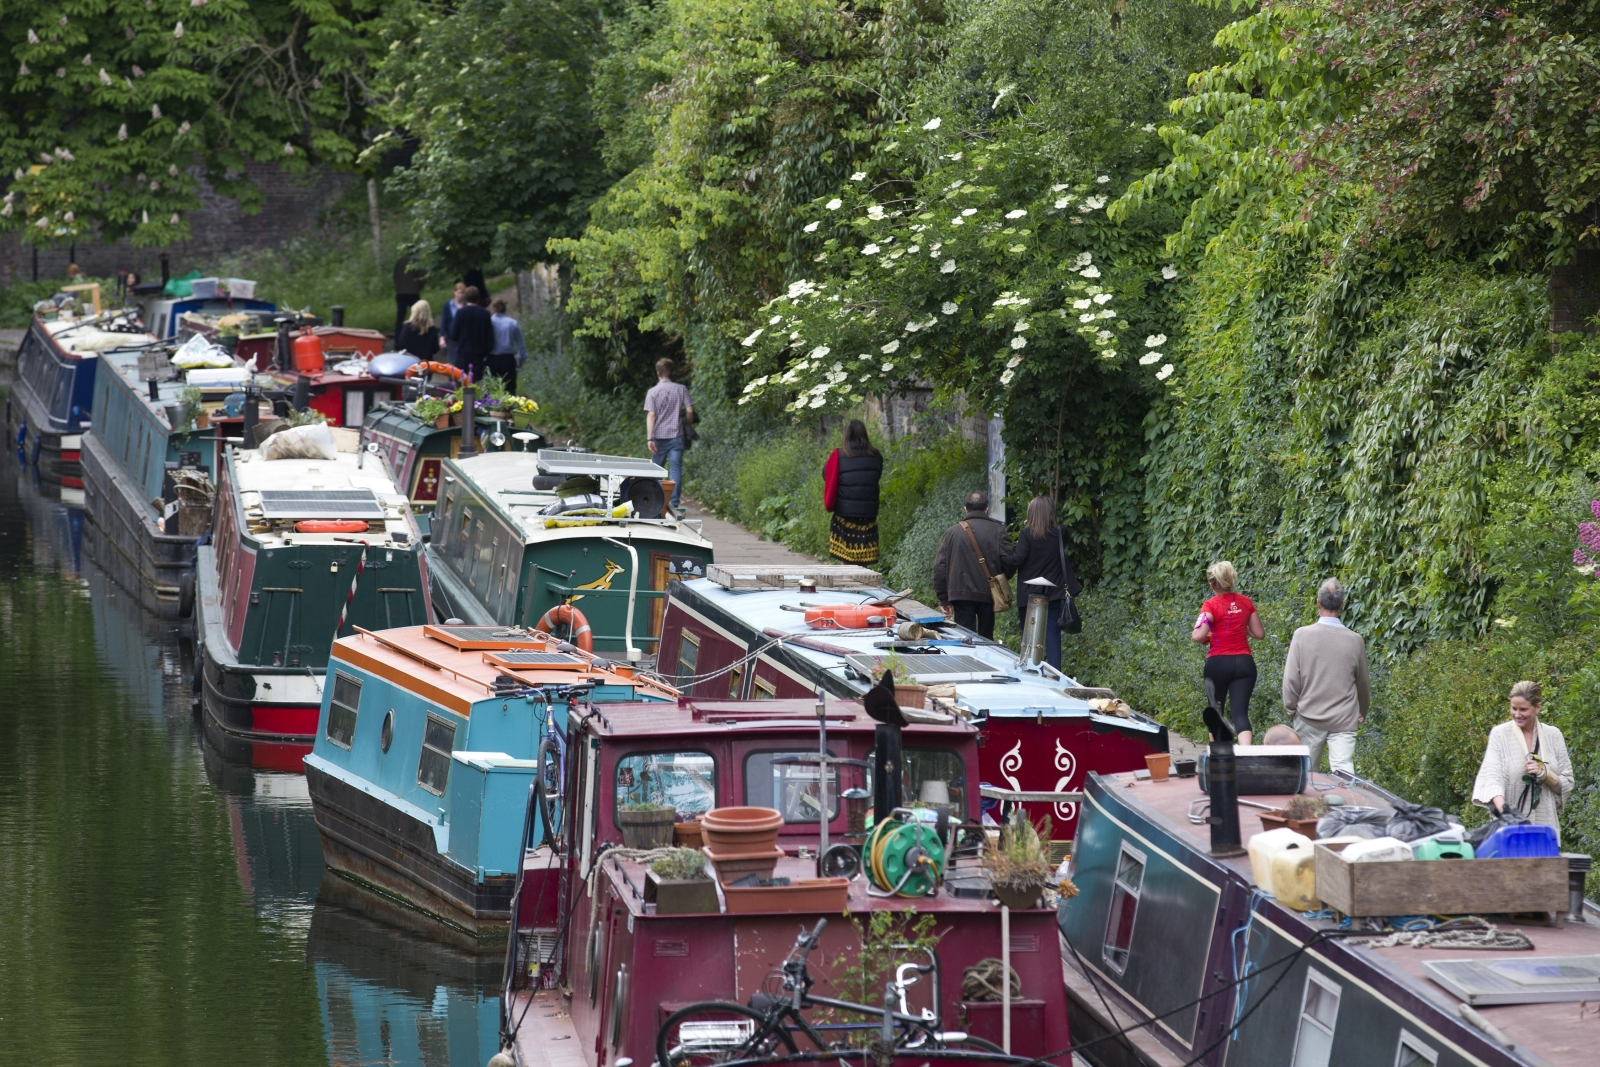 London Rents Crisis A Home On The City S Canal Boats And